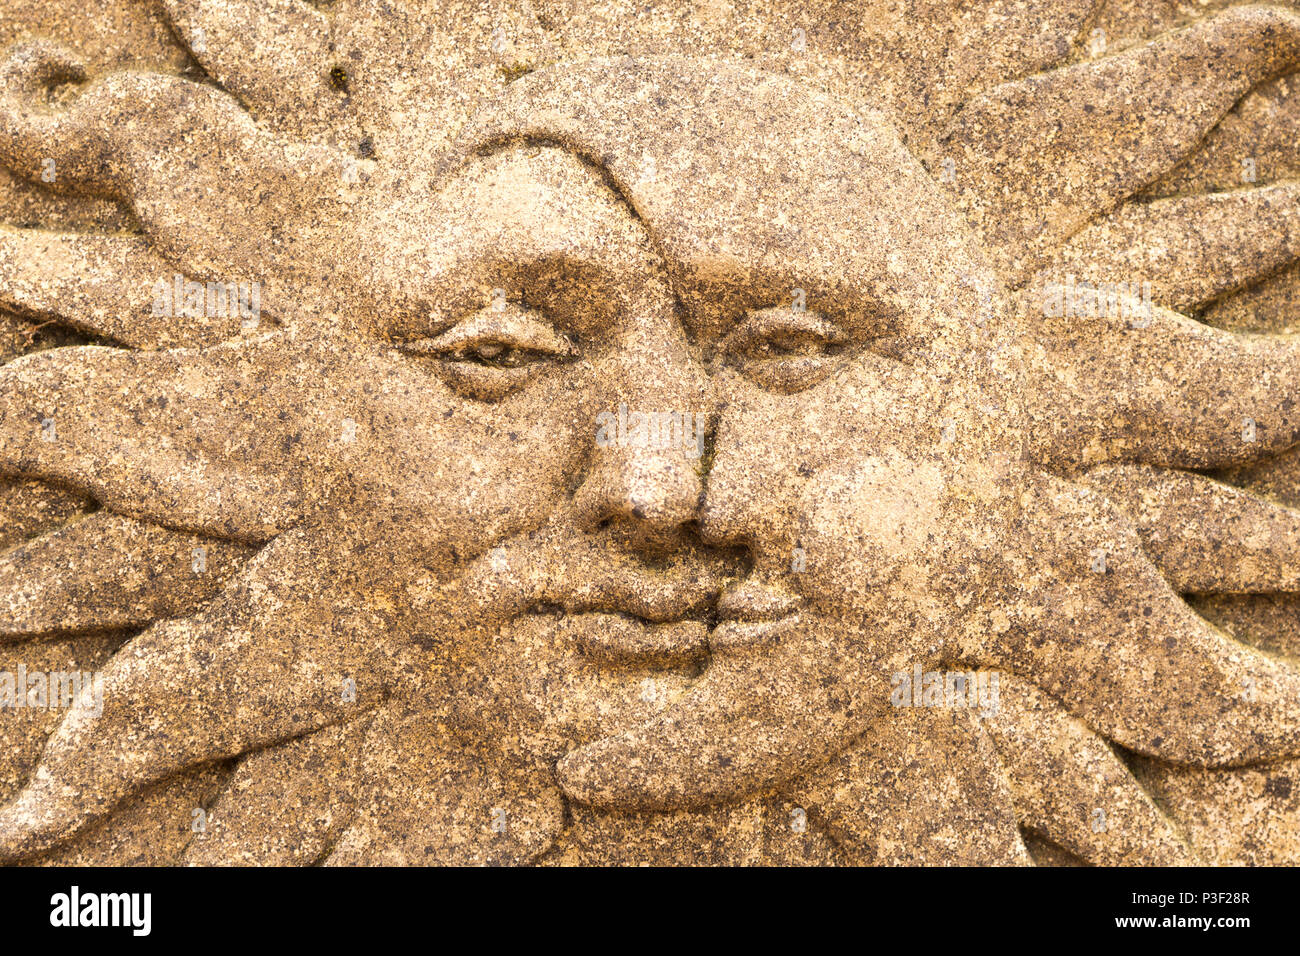 Joined Sun And Moon Faces In Stone Ornament, The Walled Garden Plant  Nursery, Benhall, Suffolk, England, UK